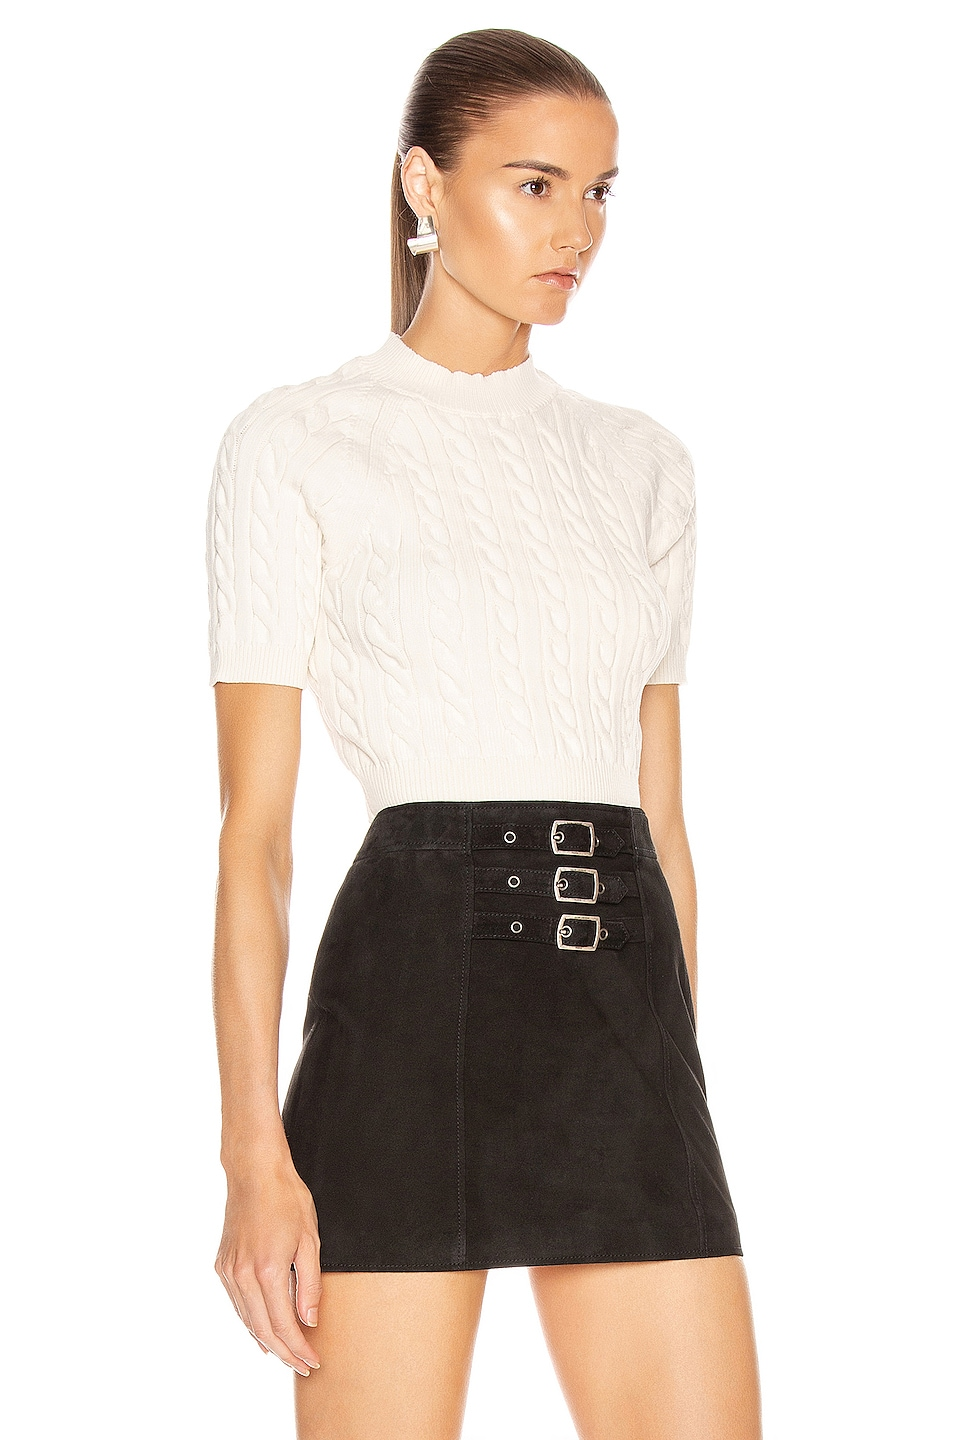 Image 2 of T by Alexander Wang Shrunken Cable Short Sleeve Sweater in Cream